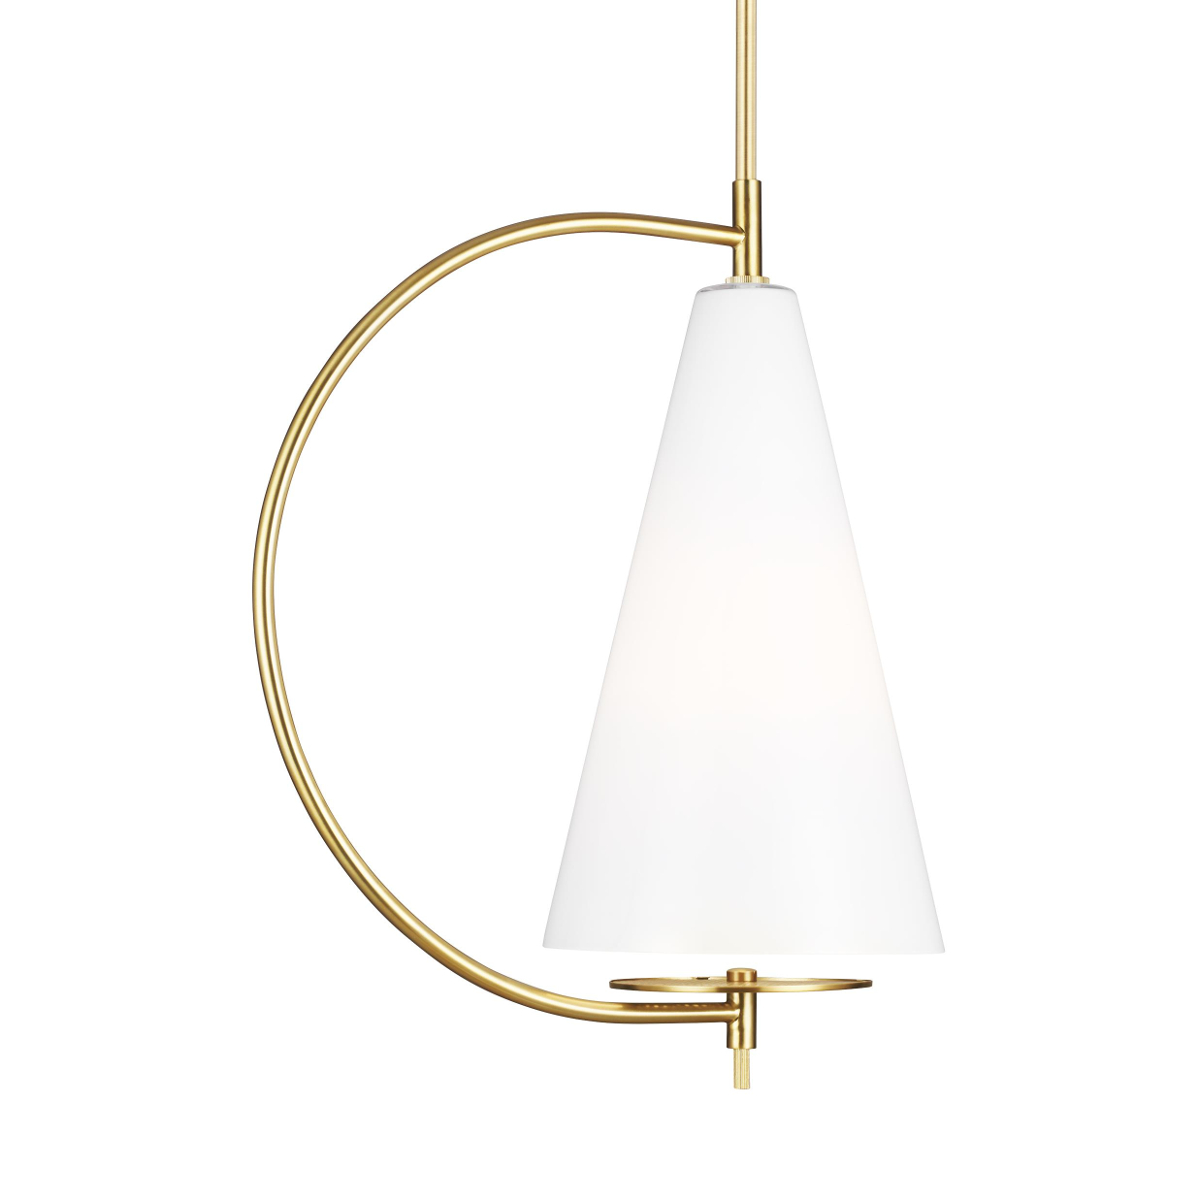 Burnished brass pendant with White shade